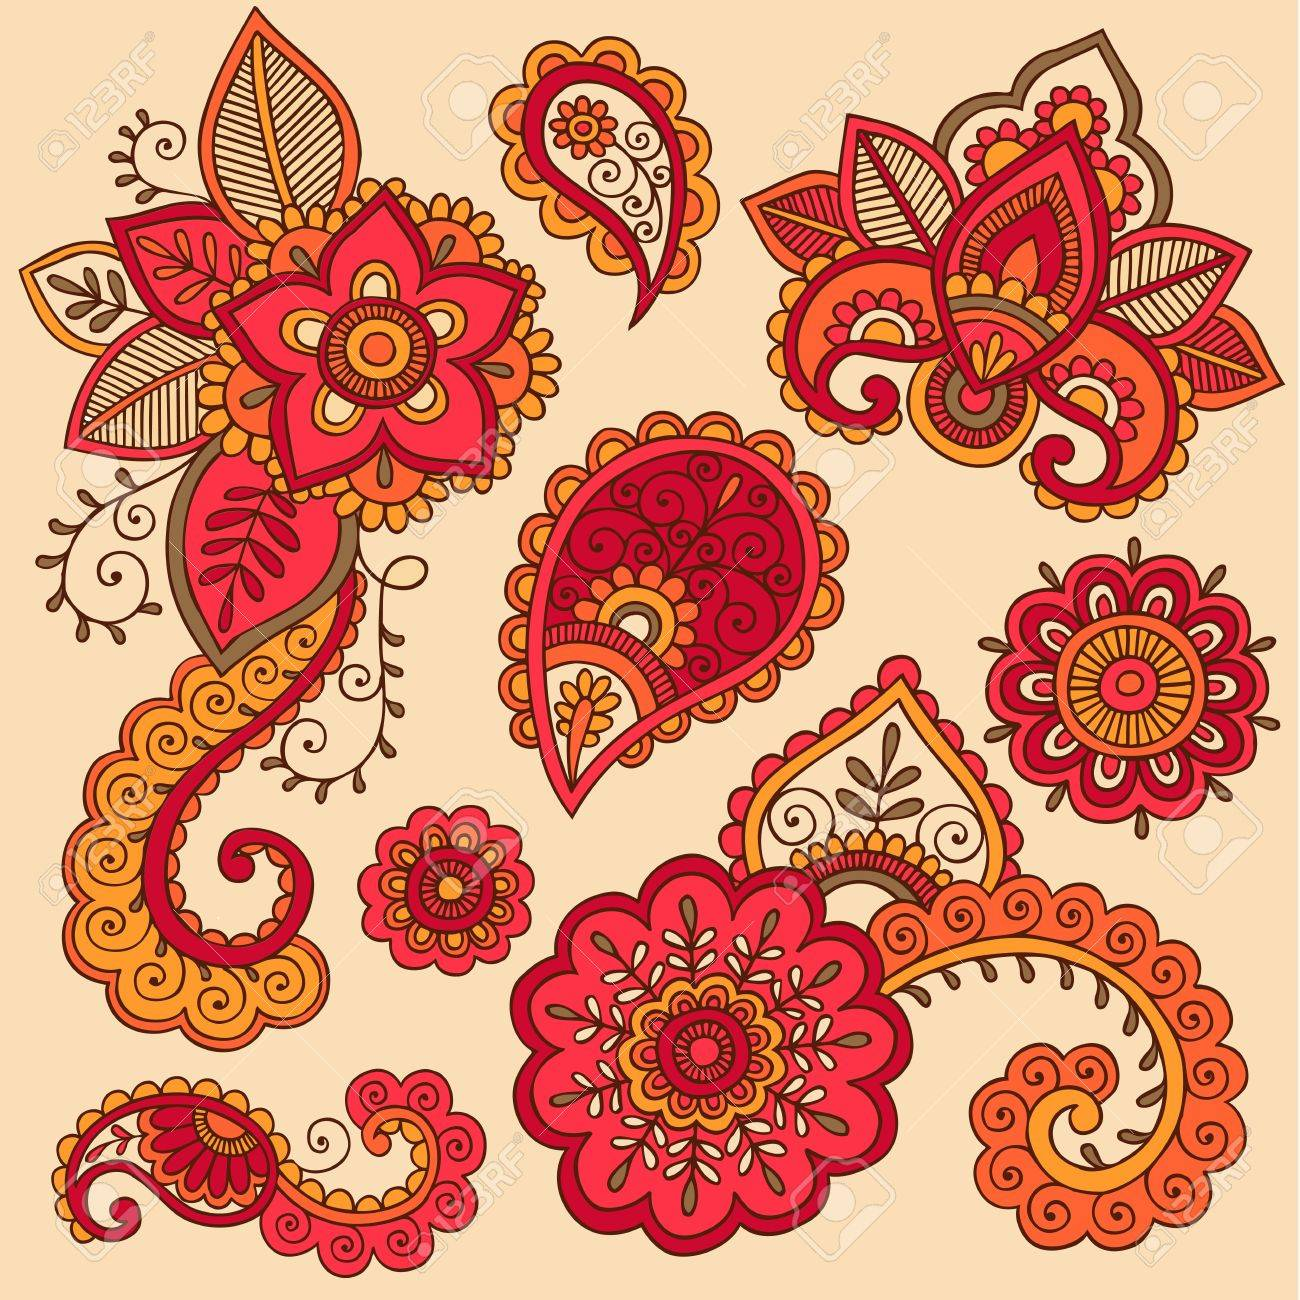 Henna Flowers and Paisley Mehndi Tattoo Doodle Set Stock Vector - 16693319